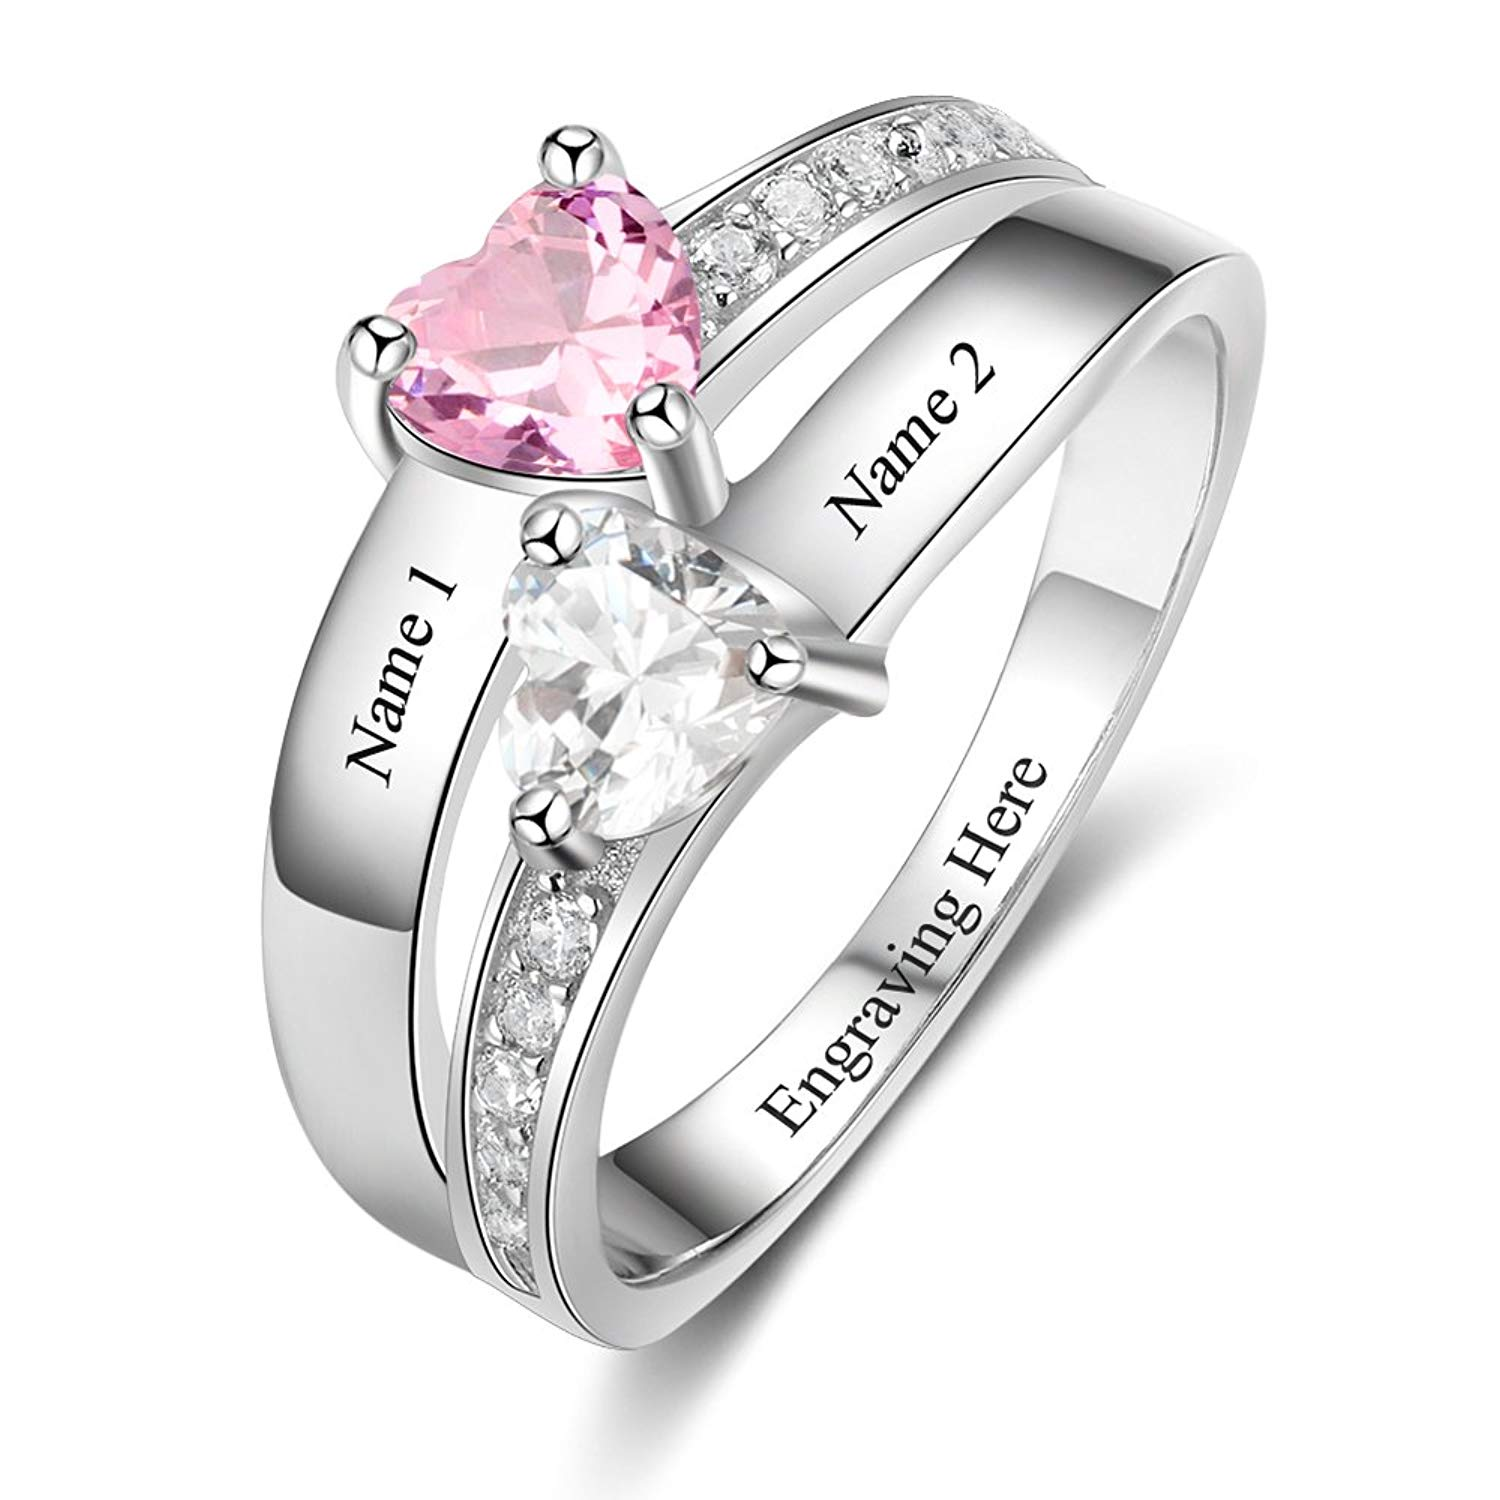 3dc46513a1 Get Quotations · To I LOVE Engagement Rings for Women Promise Rings for Her  2 Simulated Birthstone Rings Couple